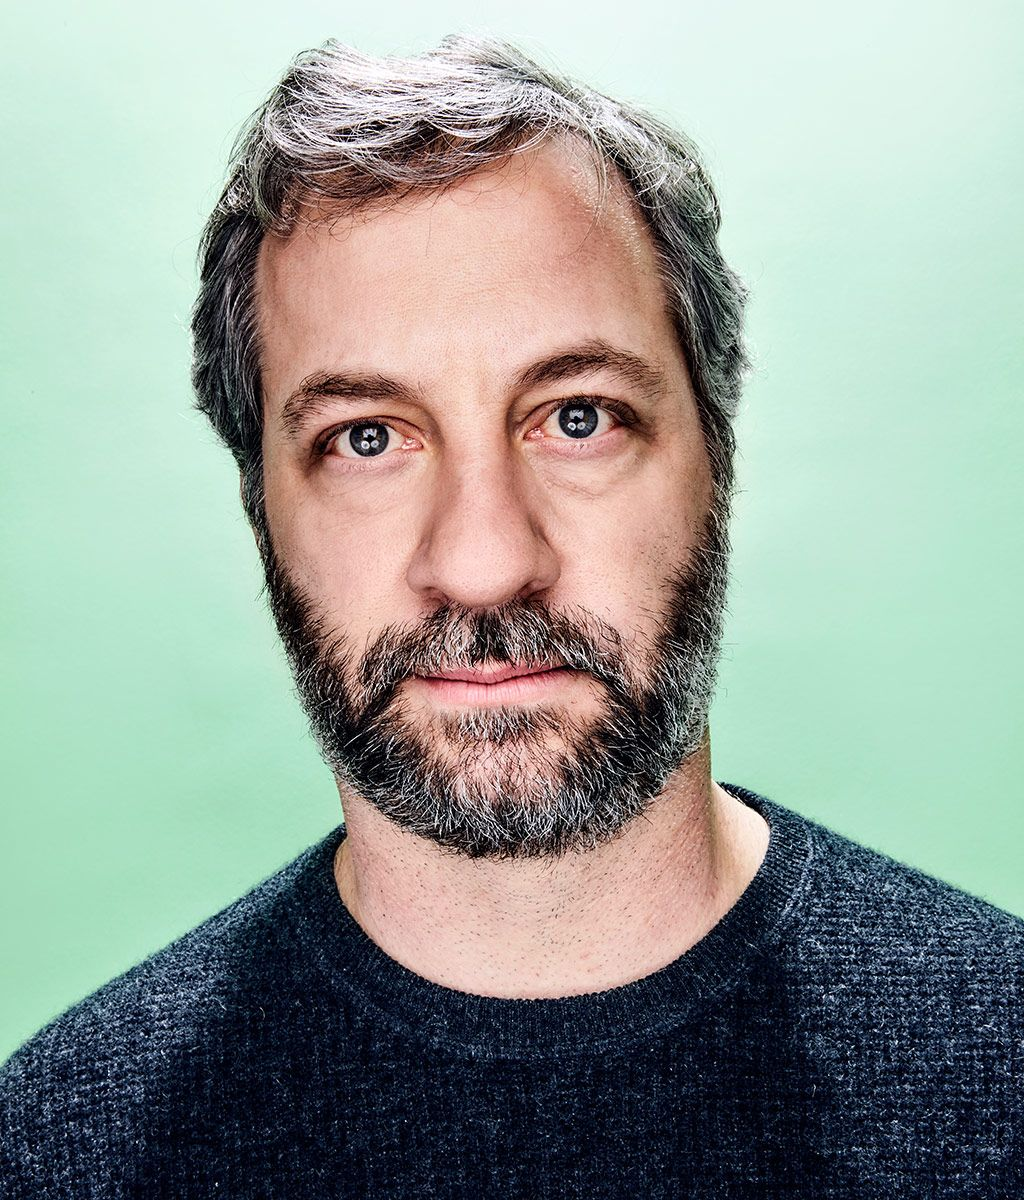 Judd Apatow on His Legacy, Feminism, and Republicans